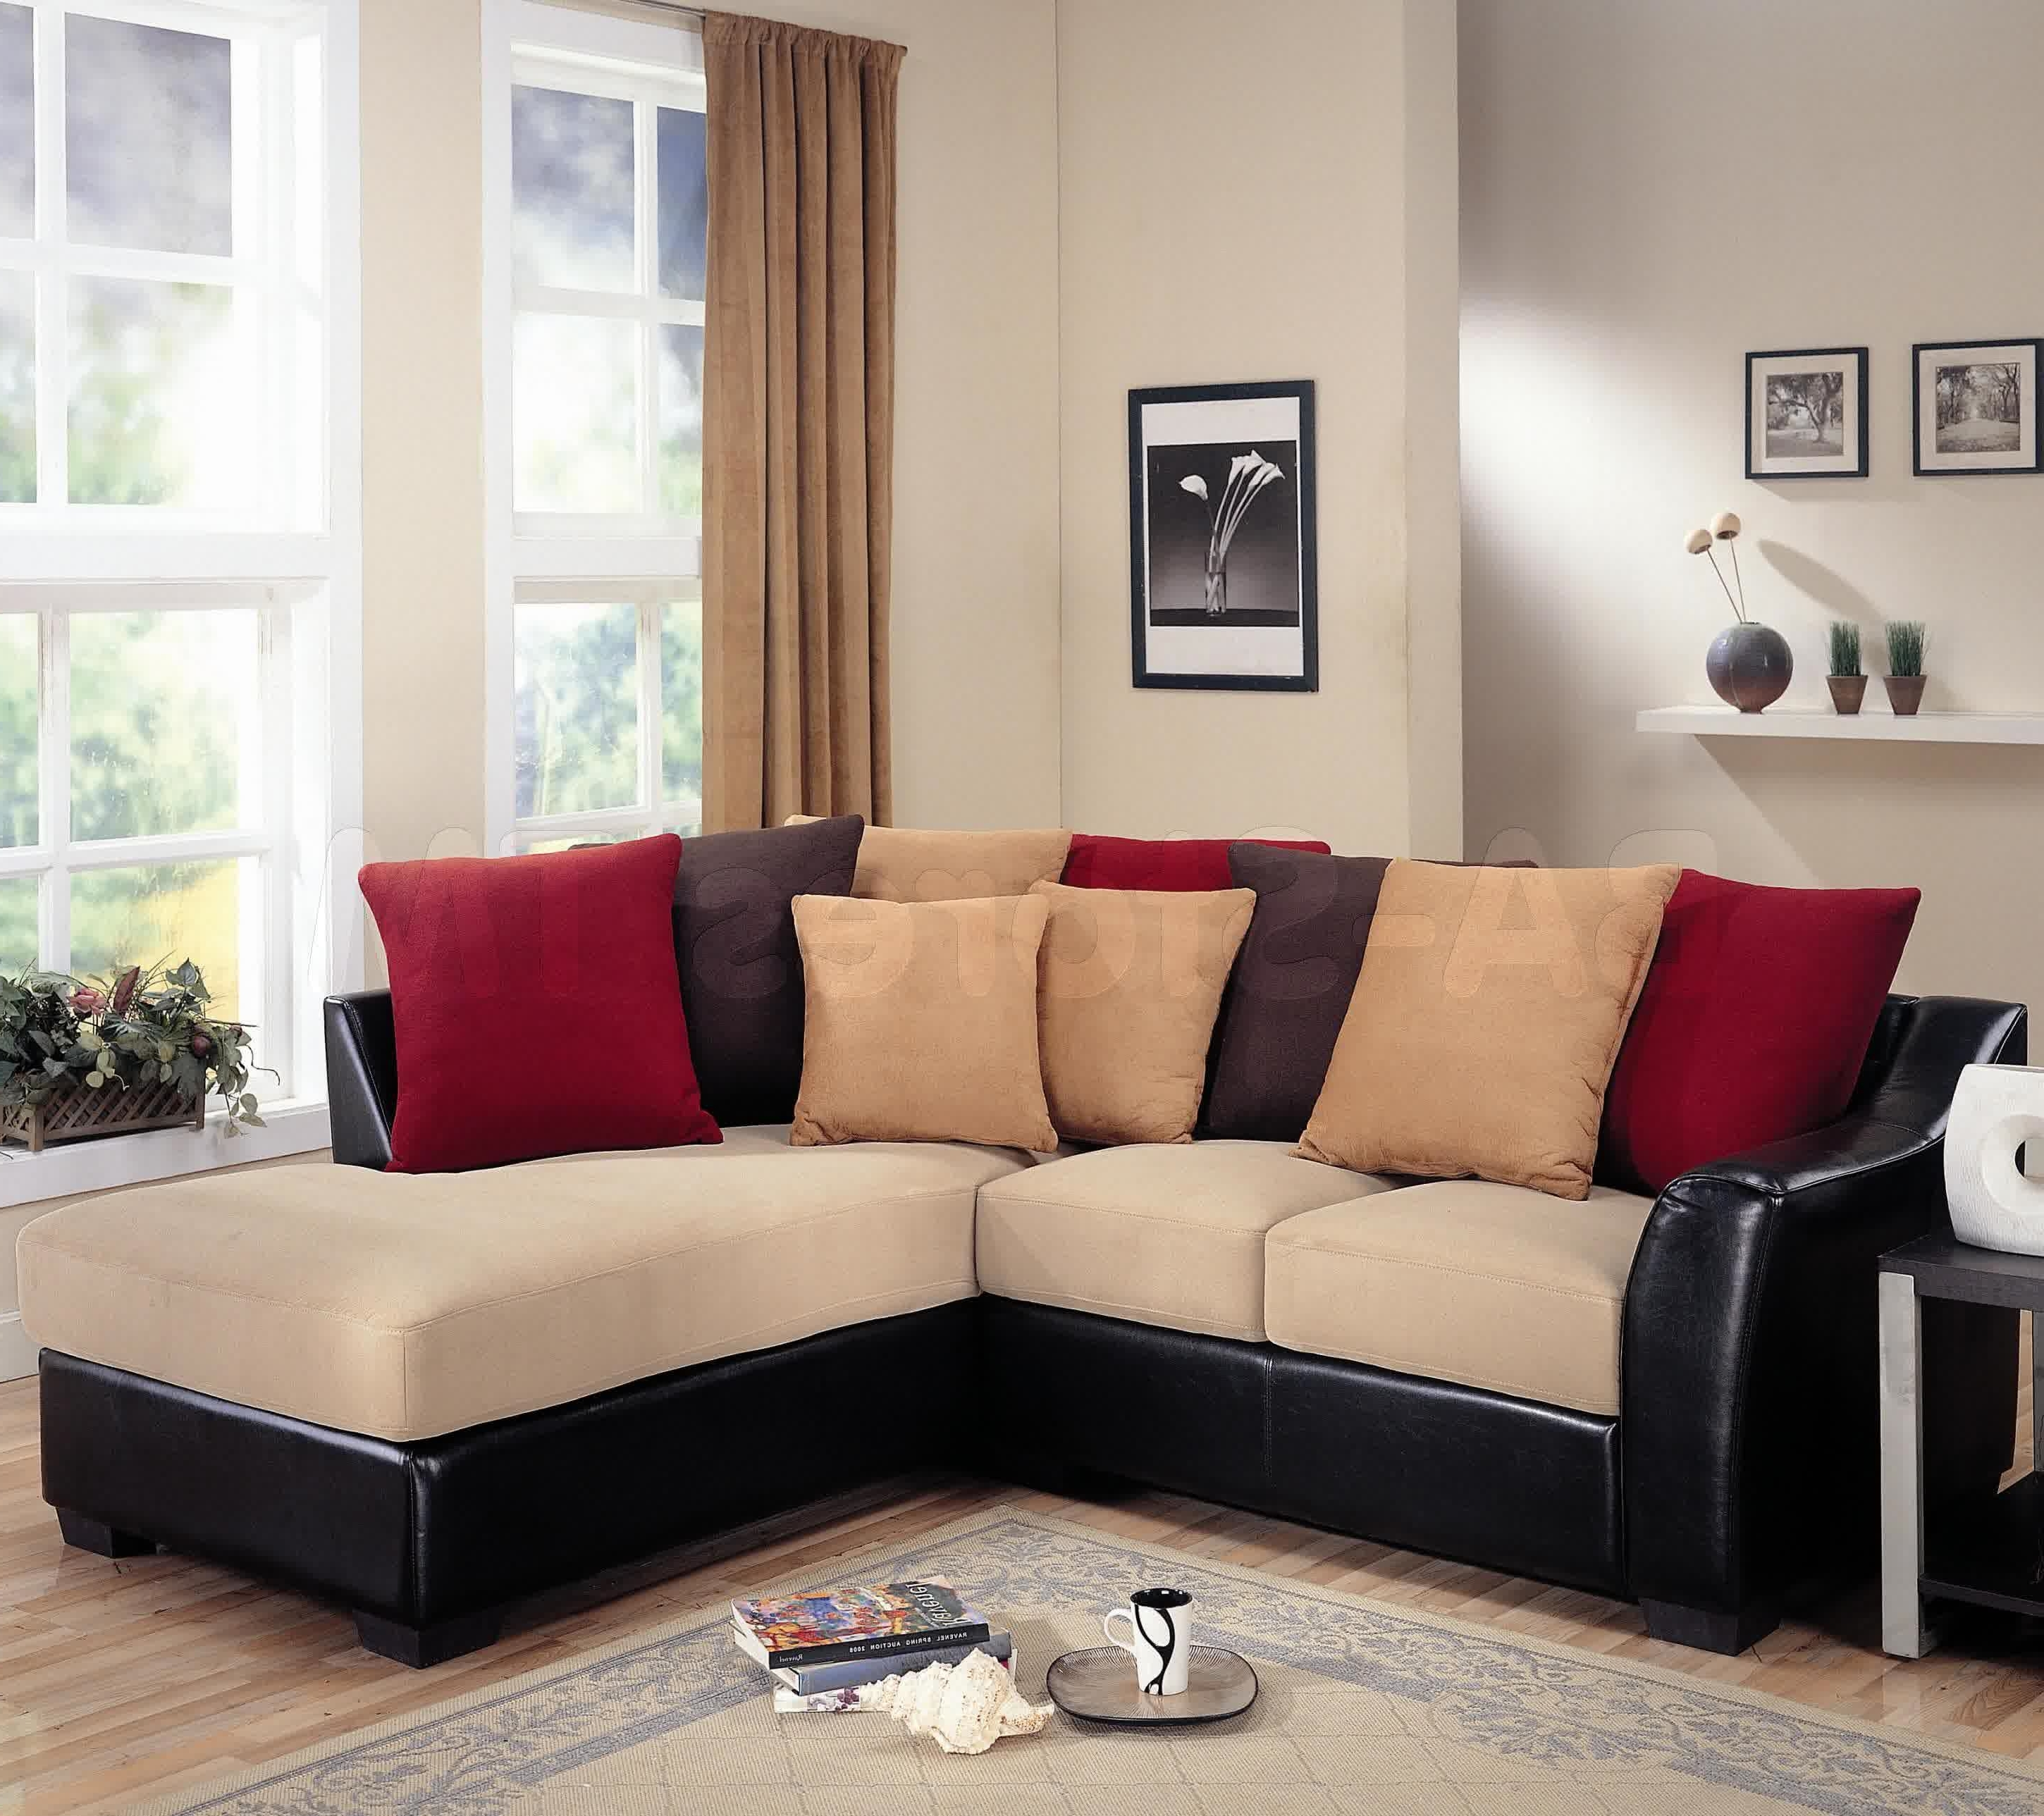 Clearance Sectional Sofas Within Favorite Home Designs : Bobs Living Room Sets Cheap Sectional Sofas Under (View 6 of 20)